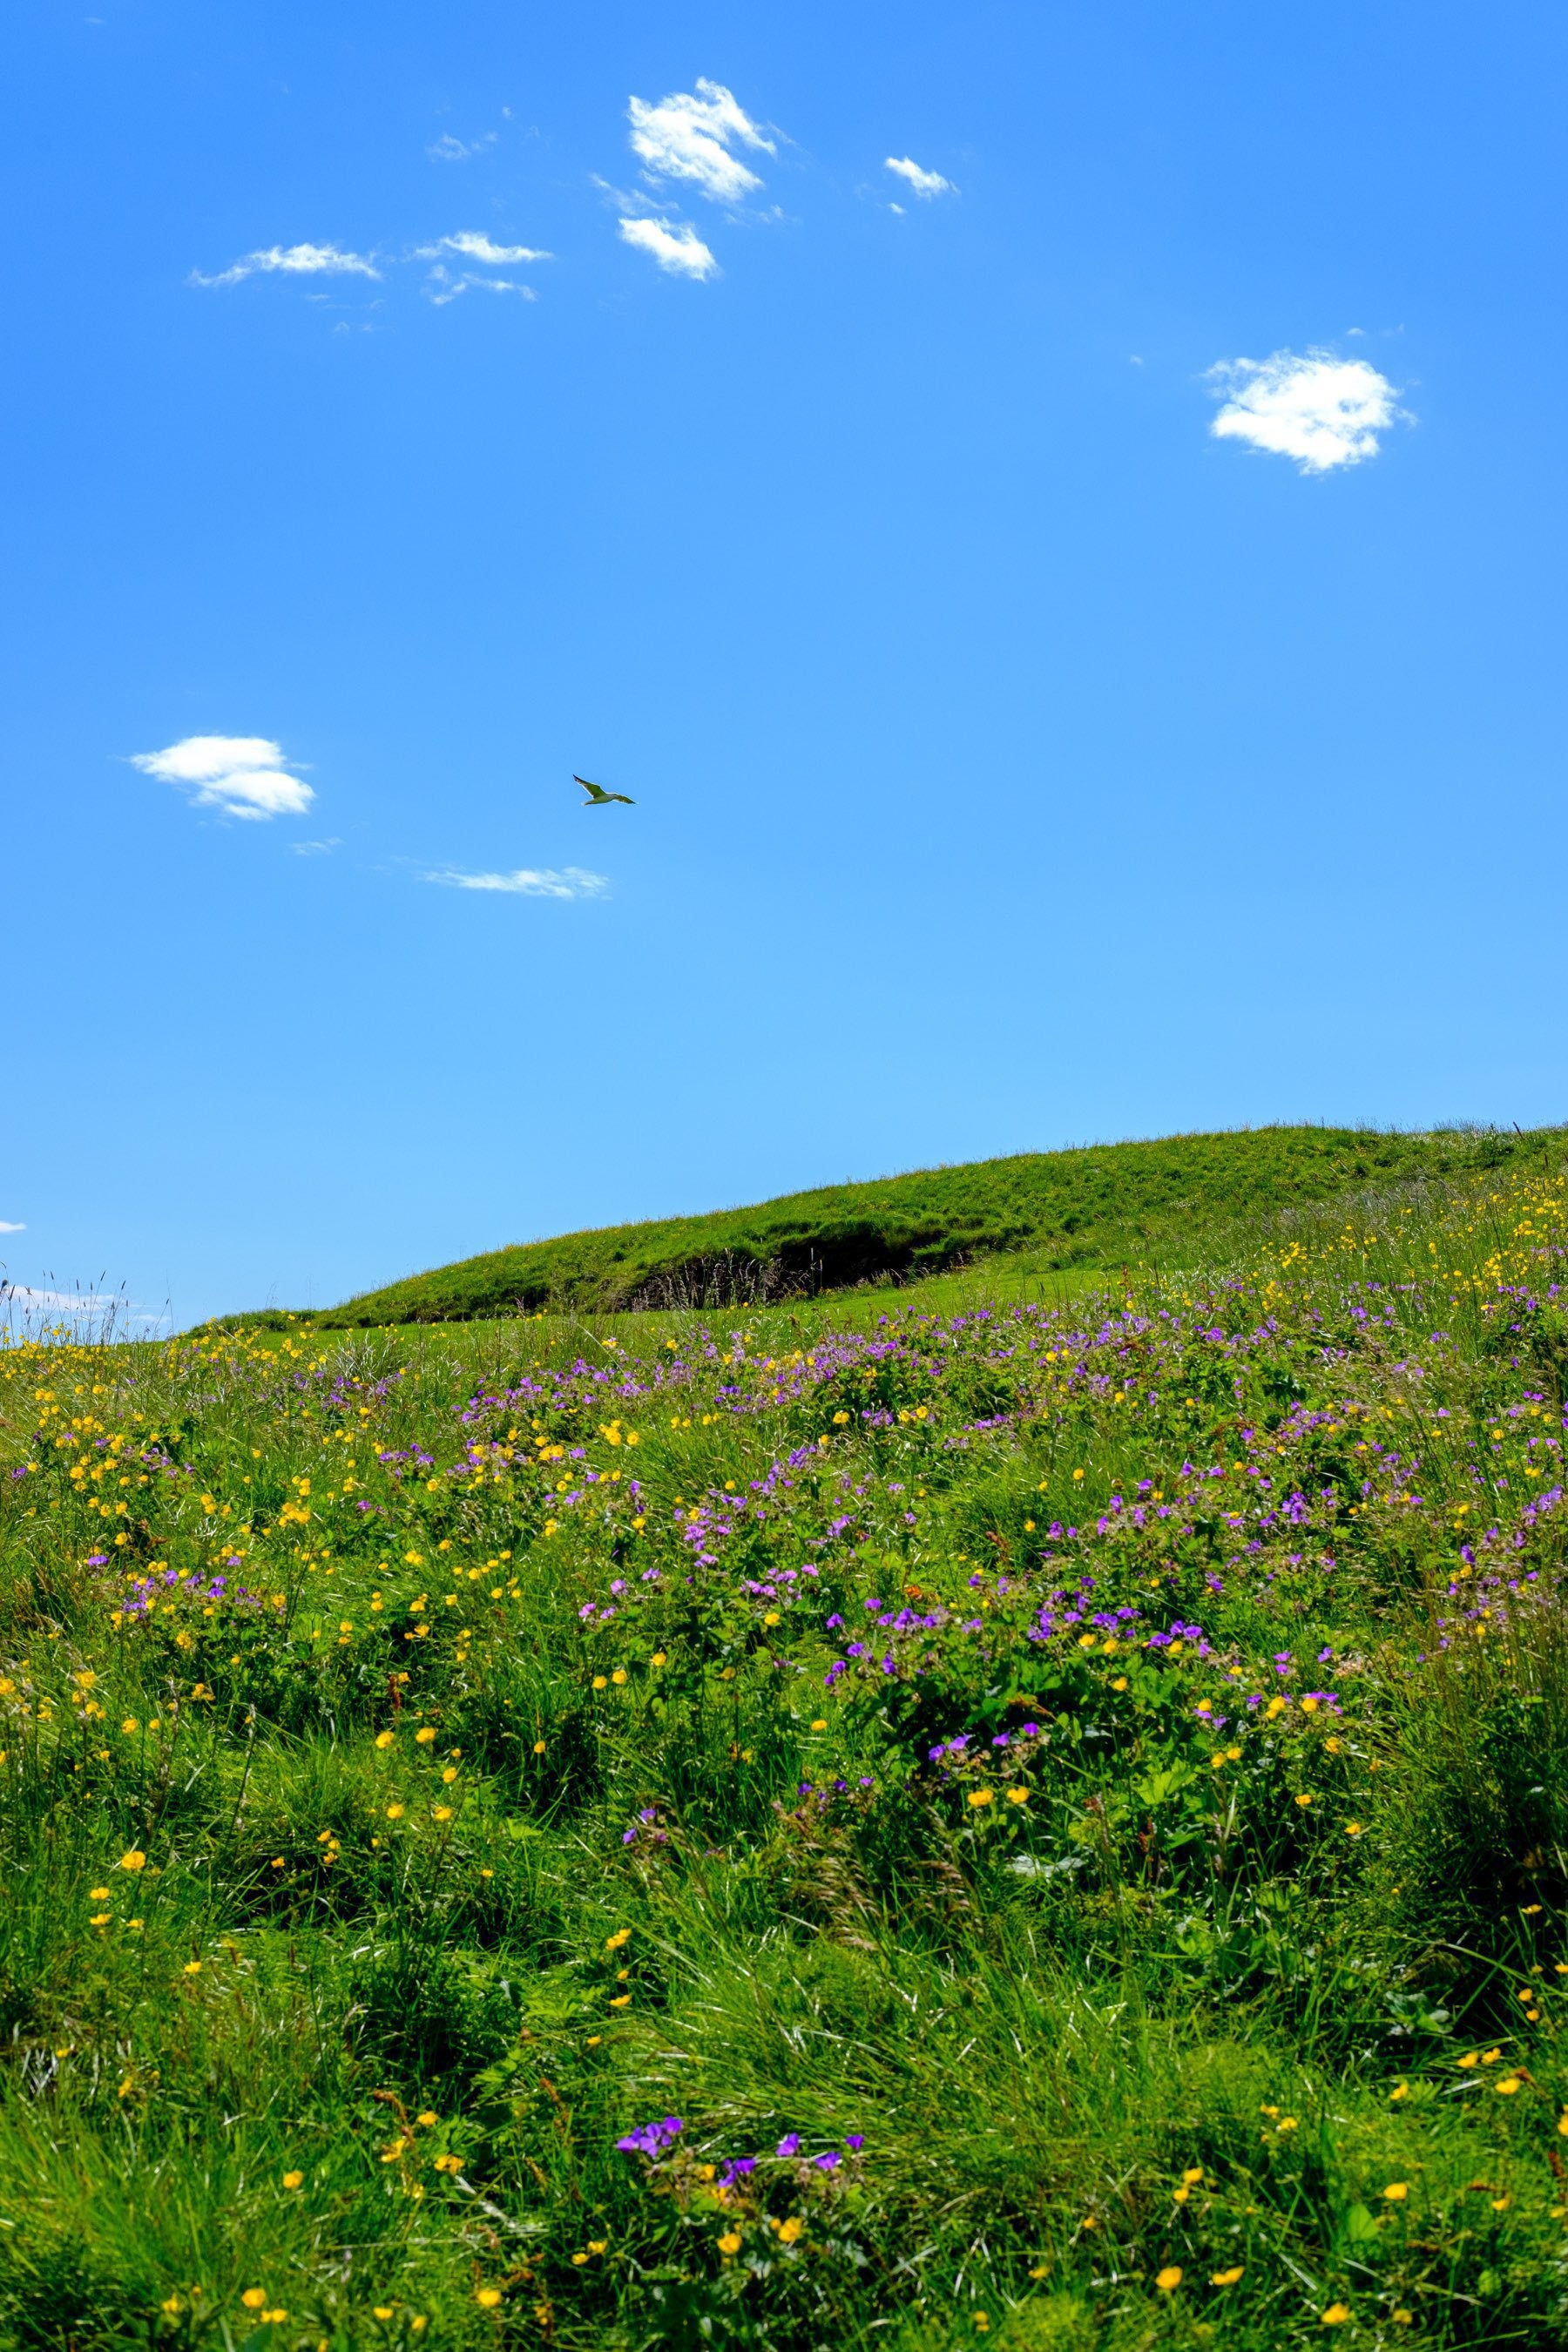 A gull flies against a very summery landscape